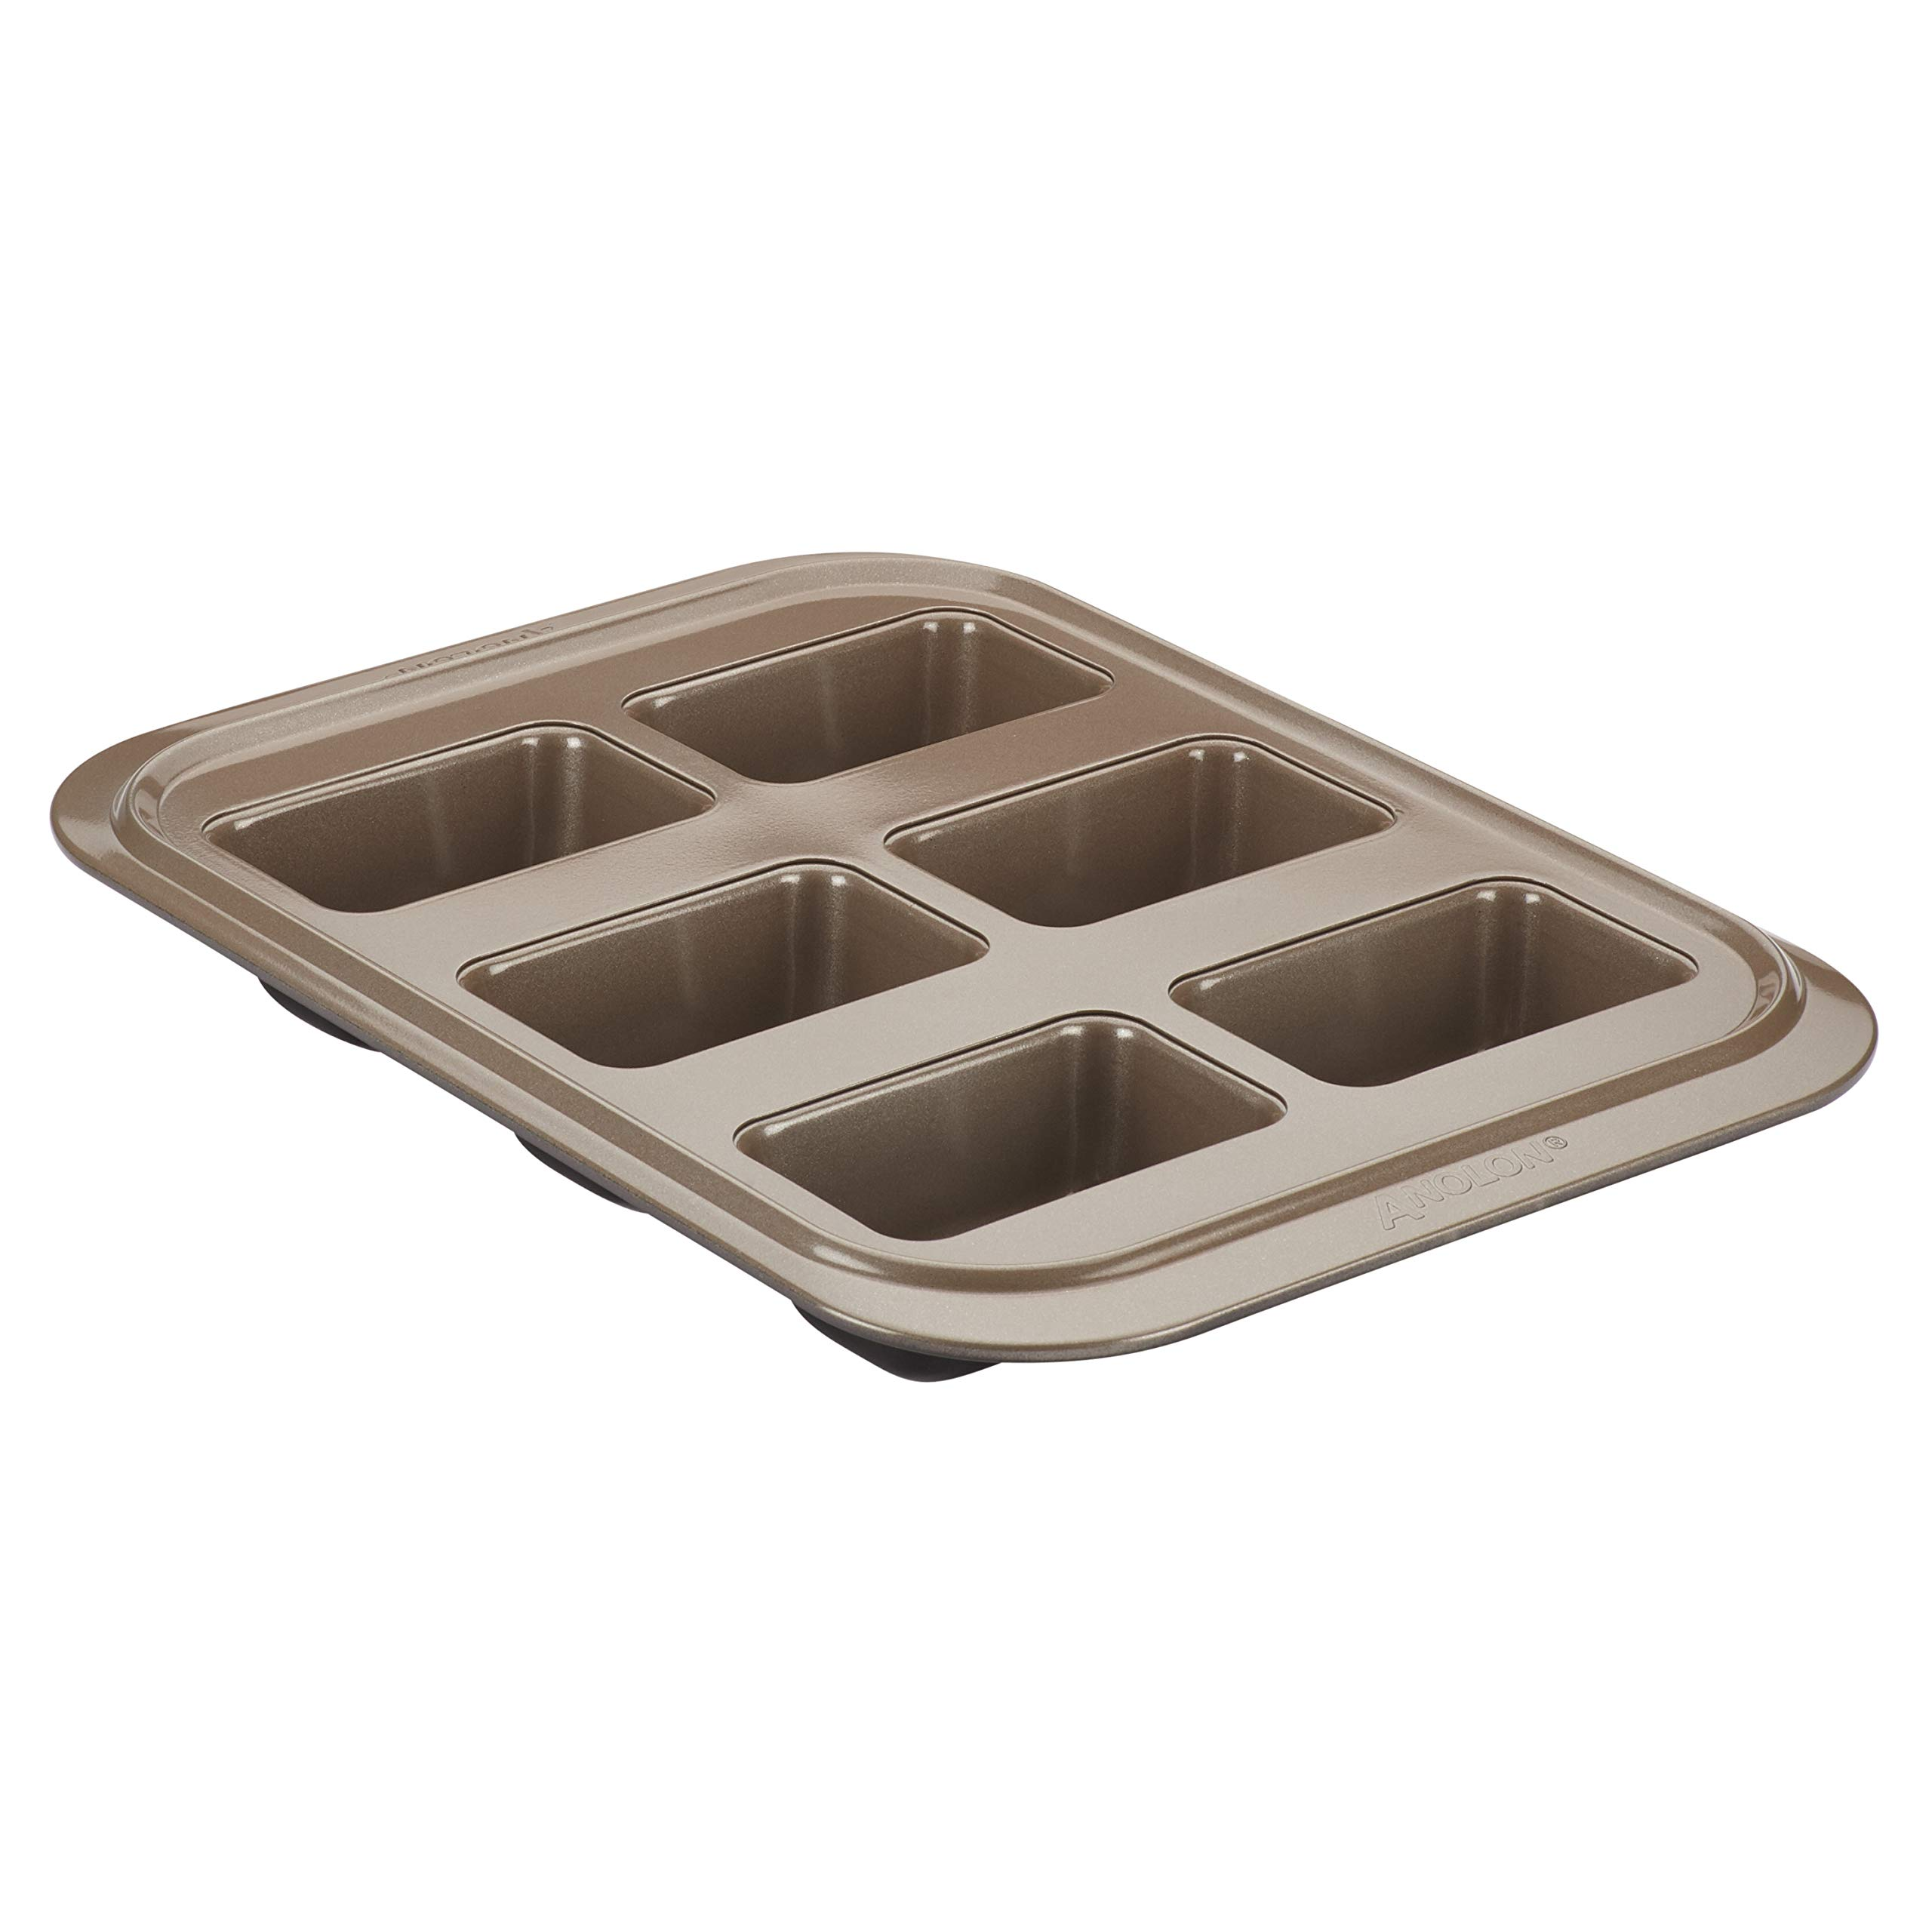 Anolon Eminence Nonstick Bakeware Six Cup Mini Loaf Pan, Onyx with Umber Interior